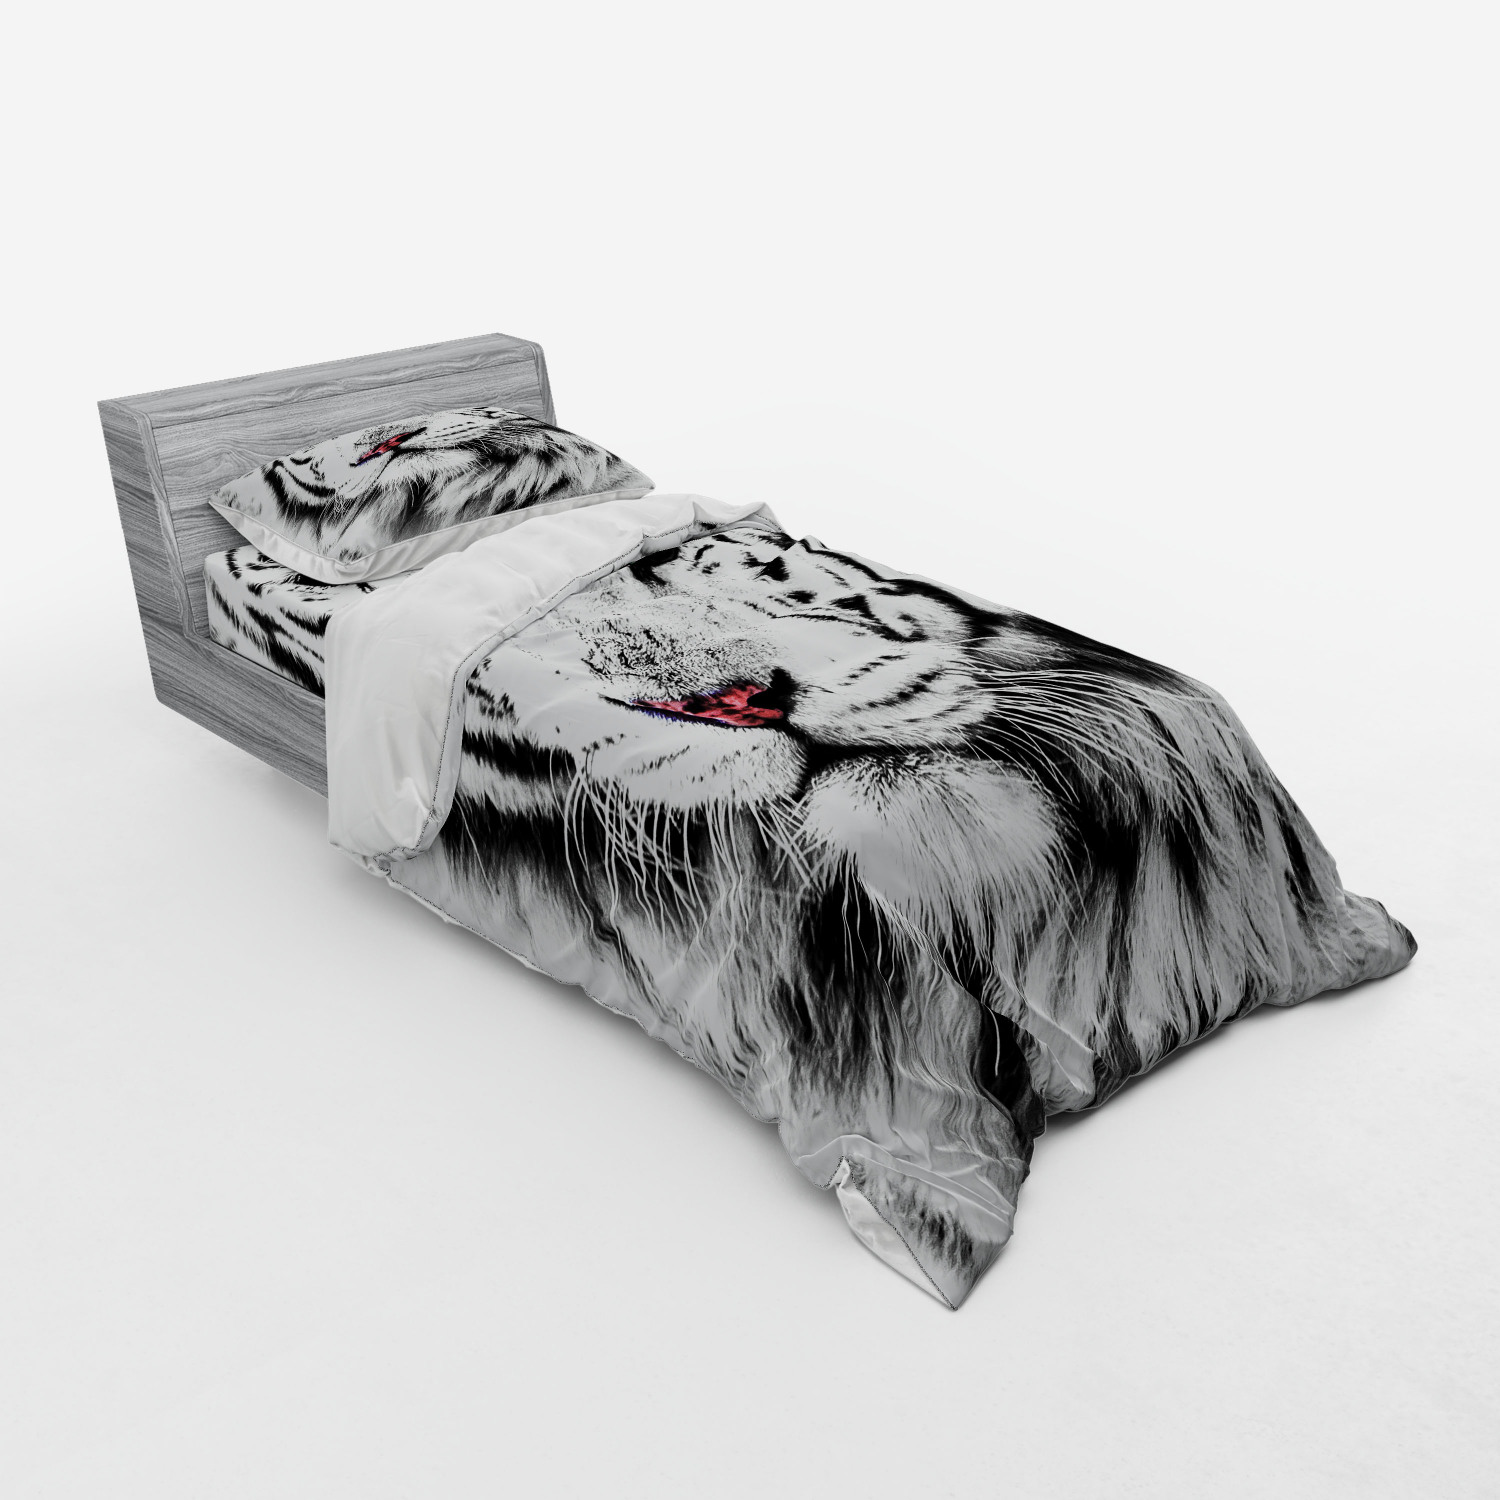 thumbnail 237 - Ambesonne Black White Art Bedding Set Duvet Cover Sham Fitted Sheet in 3 Sizes